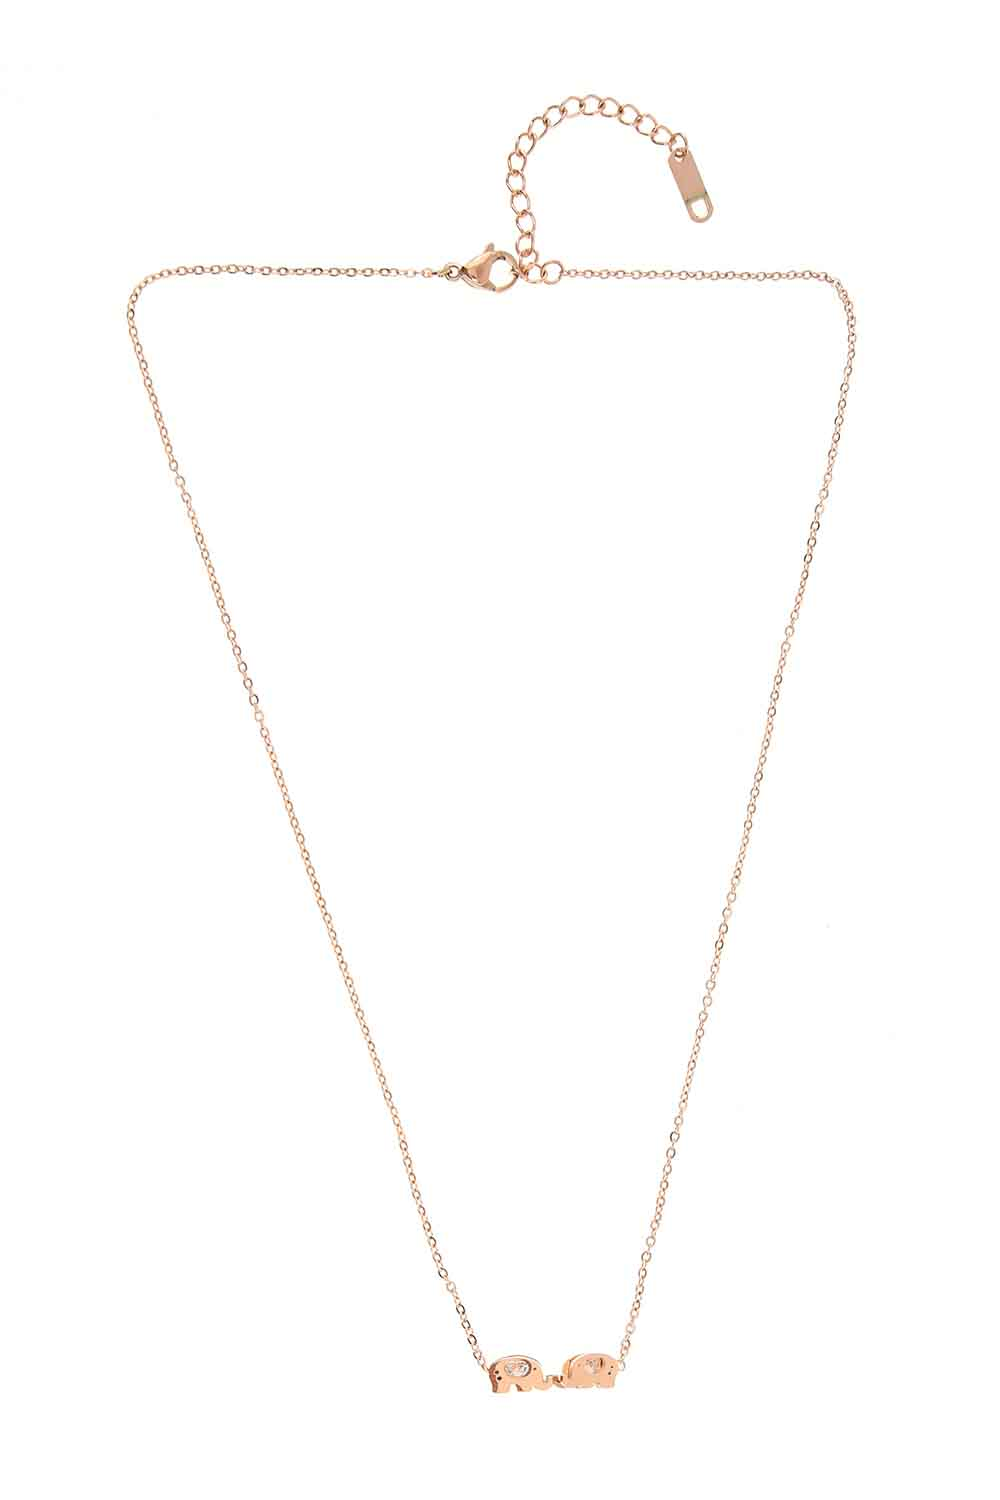 MIZALLE Elephant Detailed Steel Necklace (St) (1)